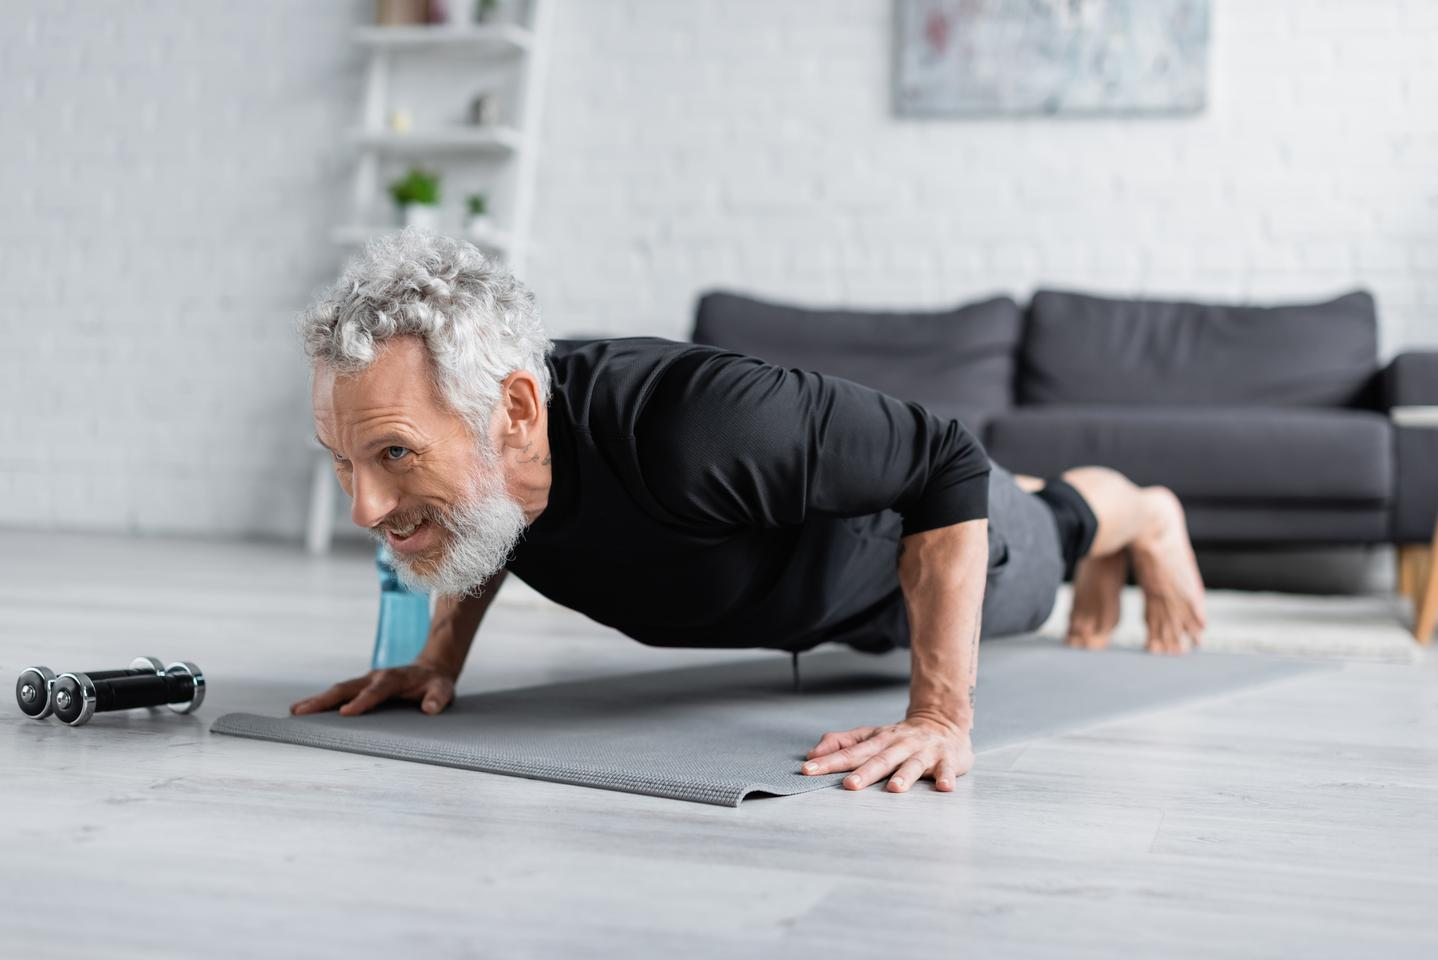 Scientists have identified sets of proteins in the blood that can indicate how likely a person is to benefit from exercise designed to boost cardiorespiratory fitness